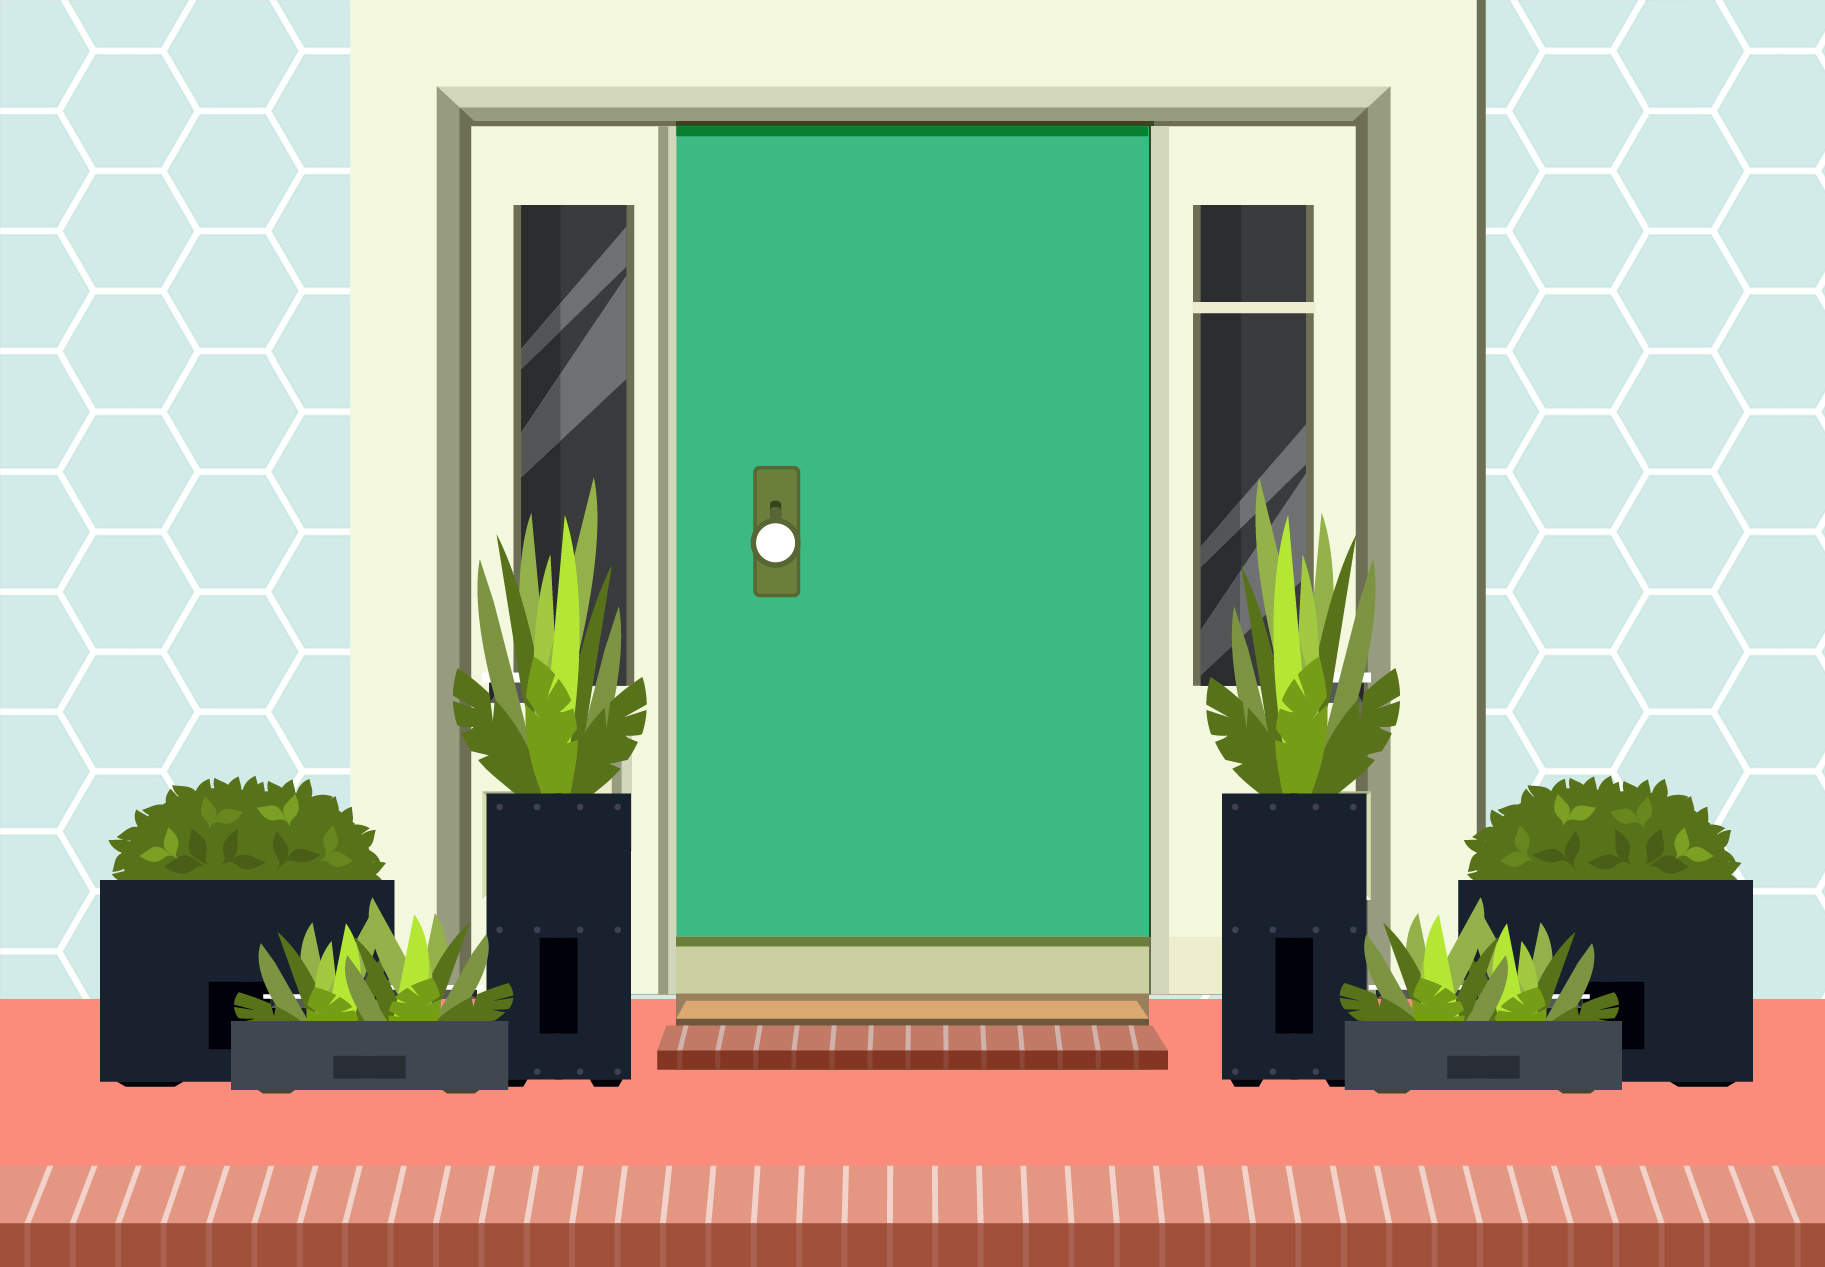 Container Gardening Mistakes to Avoid, potted plants next to front door